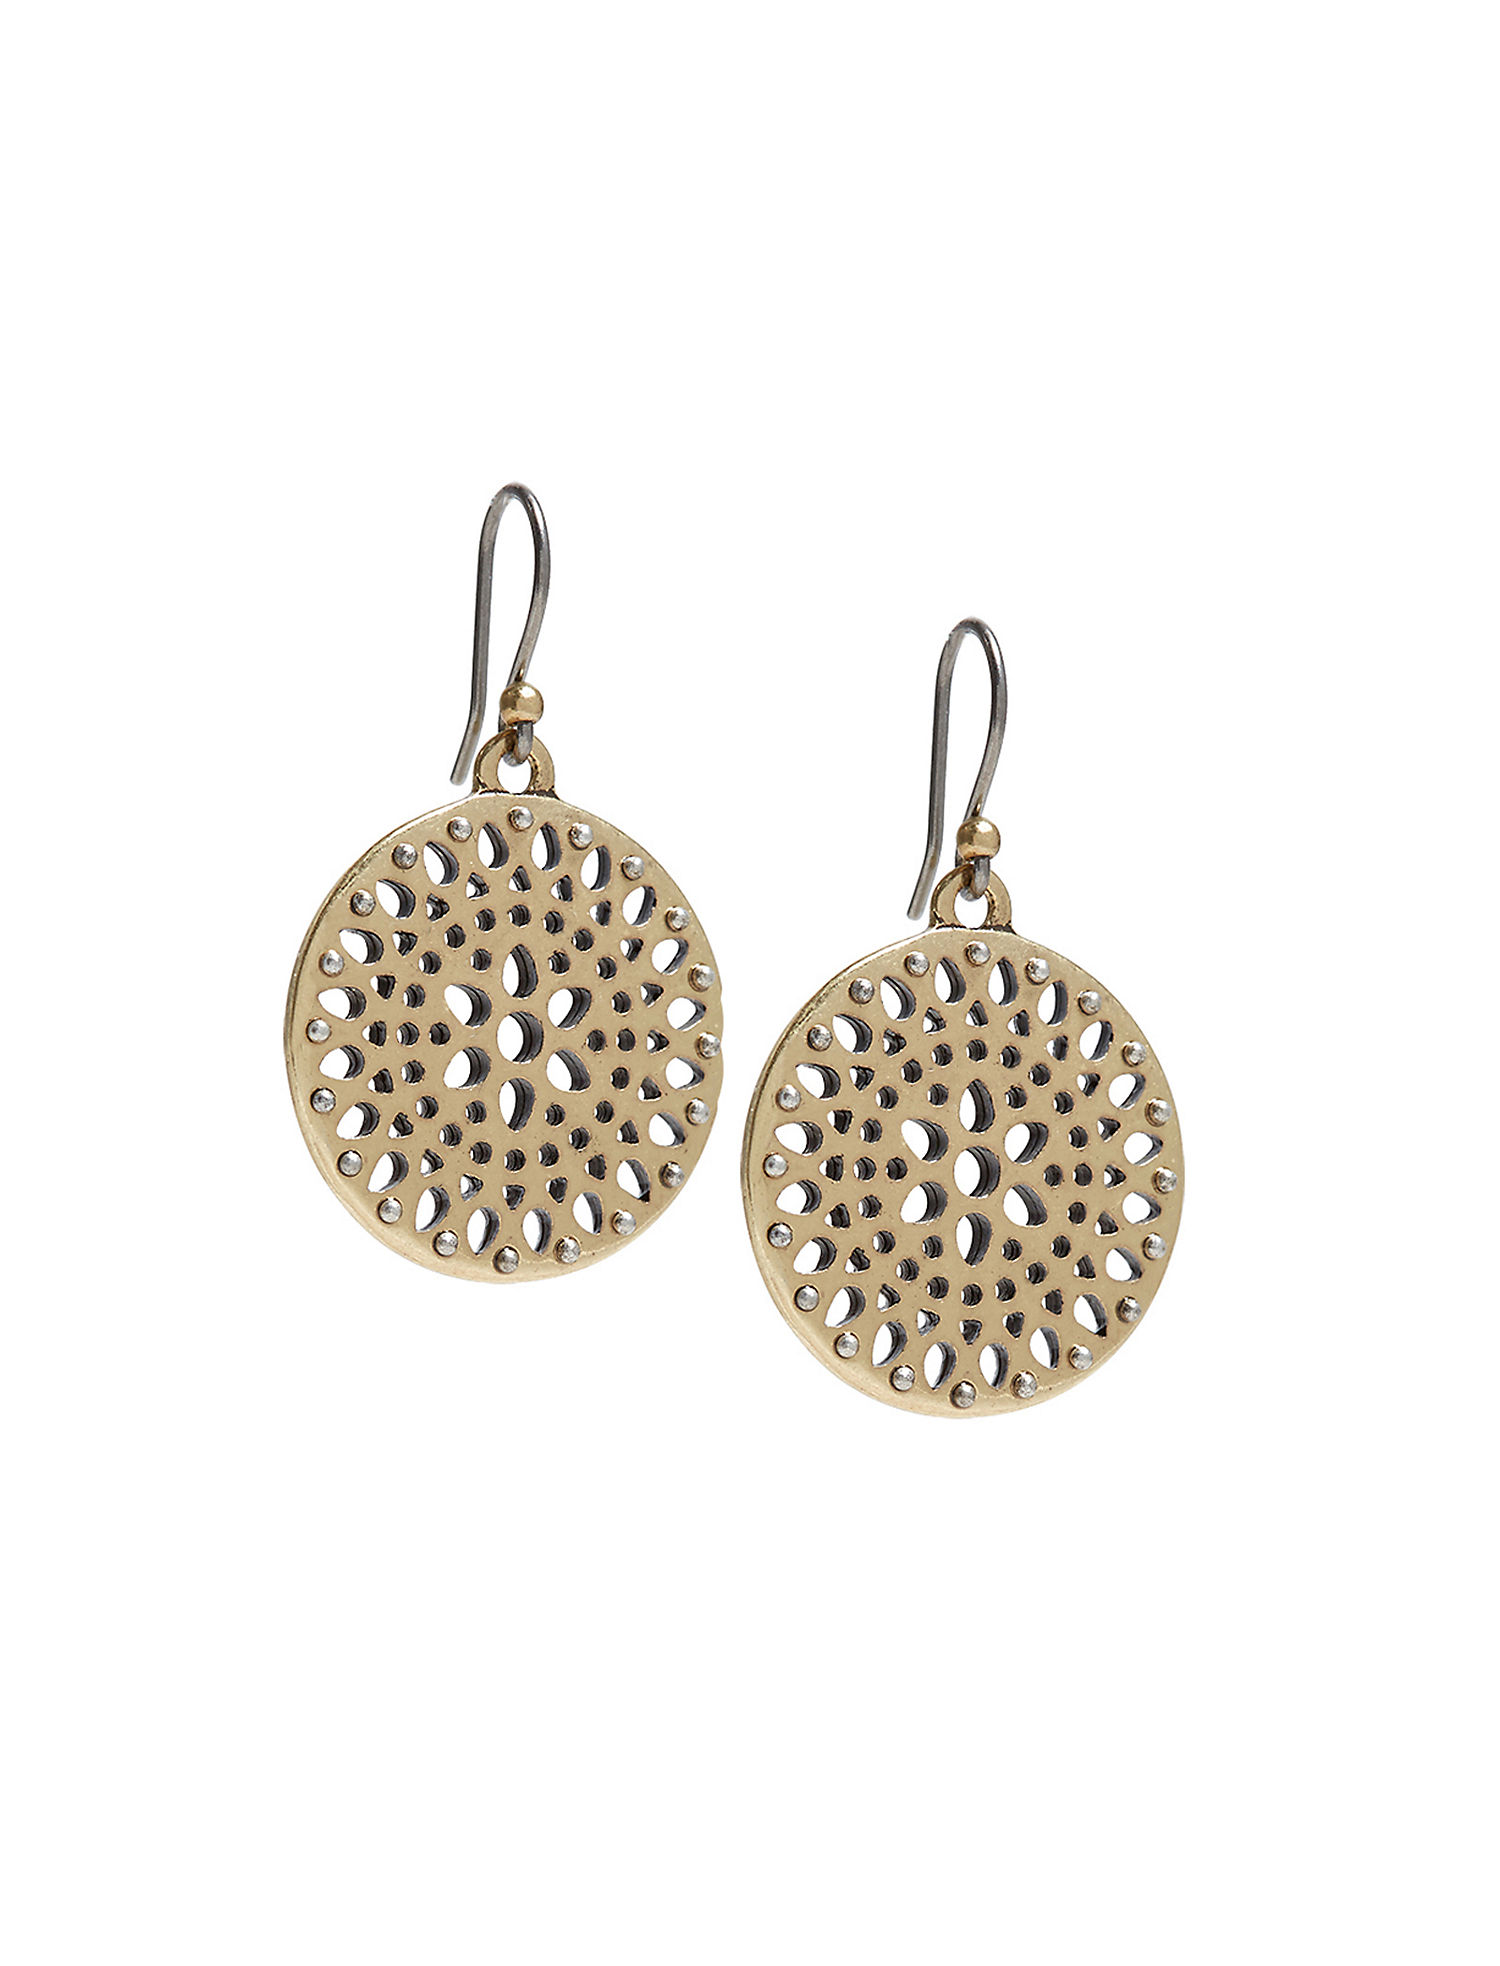 verge work earrings img girl products the